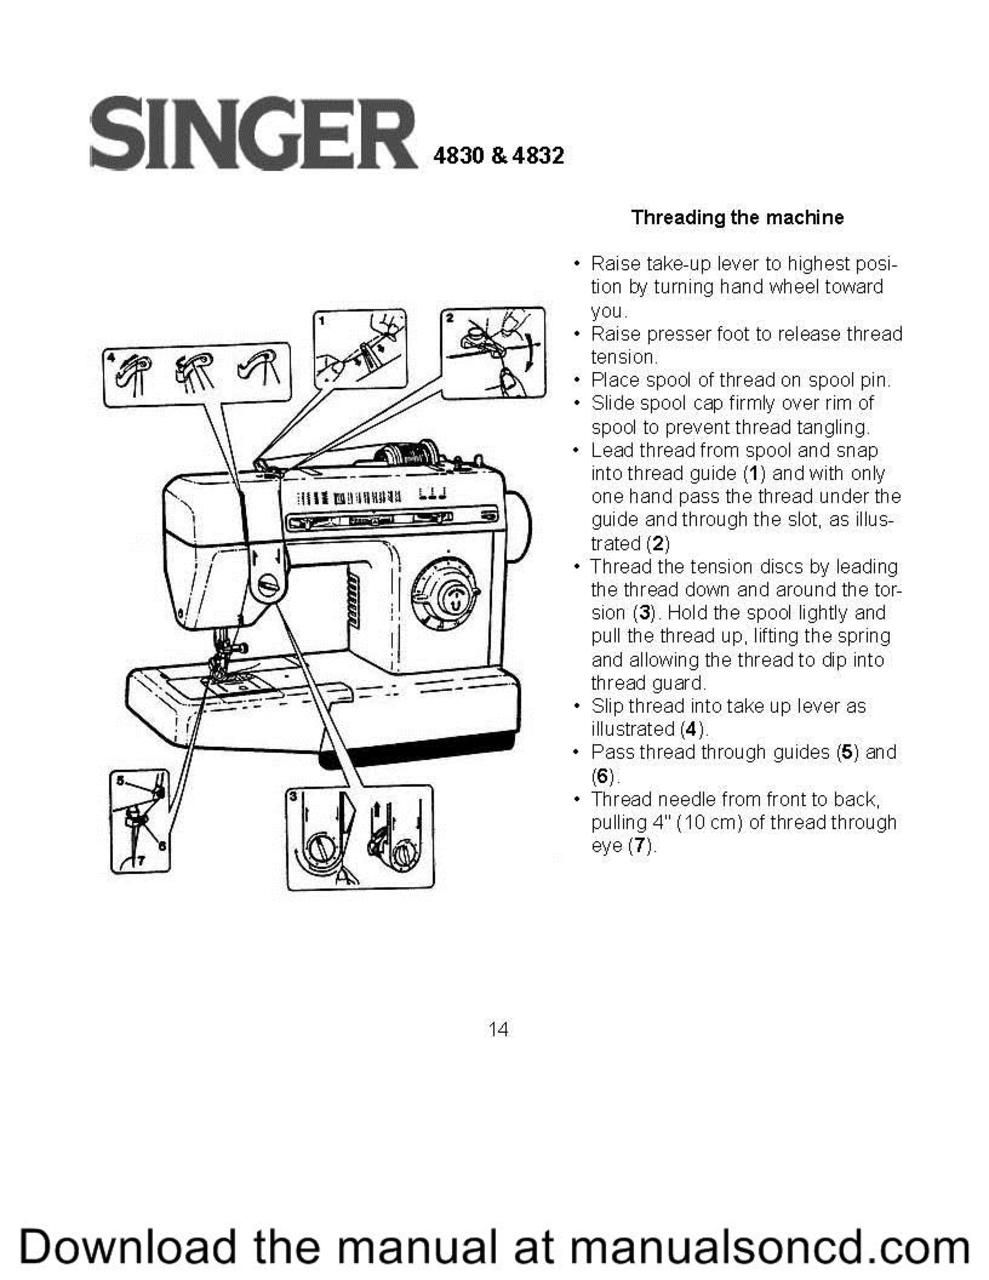 How to thread the Singer 4830 sewing machine. Free Threading Guide ...